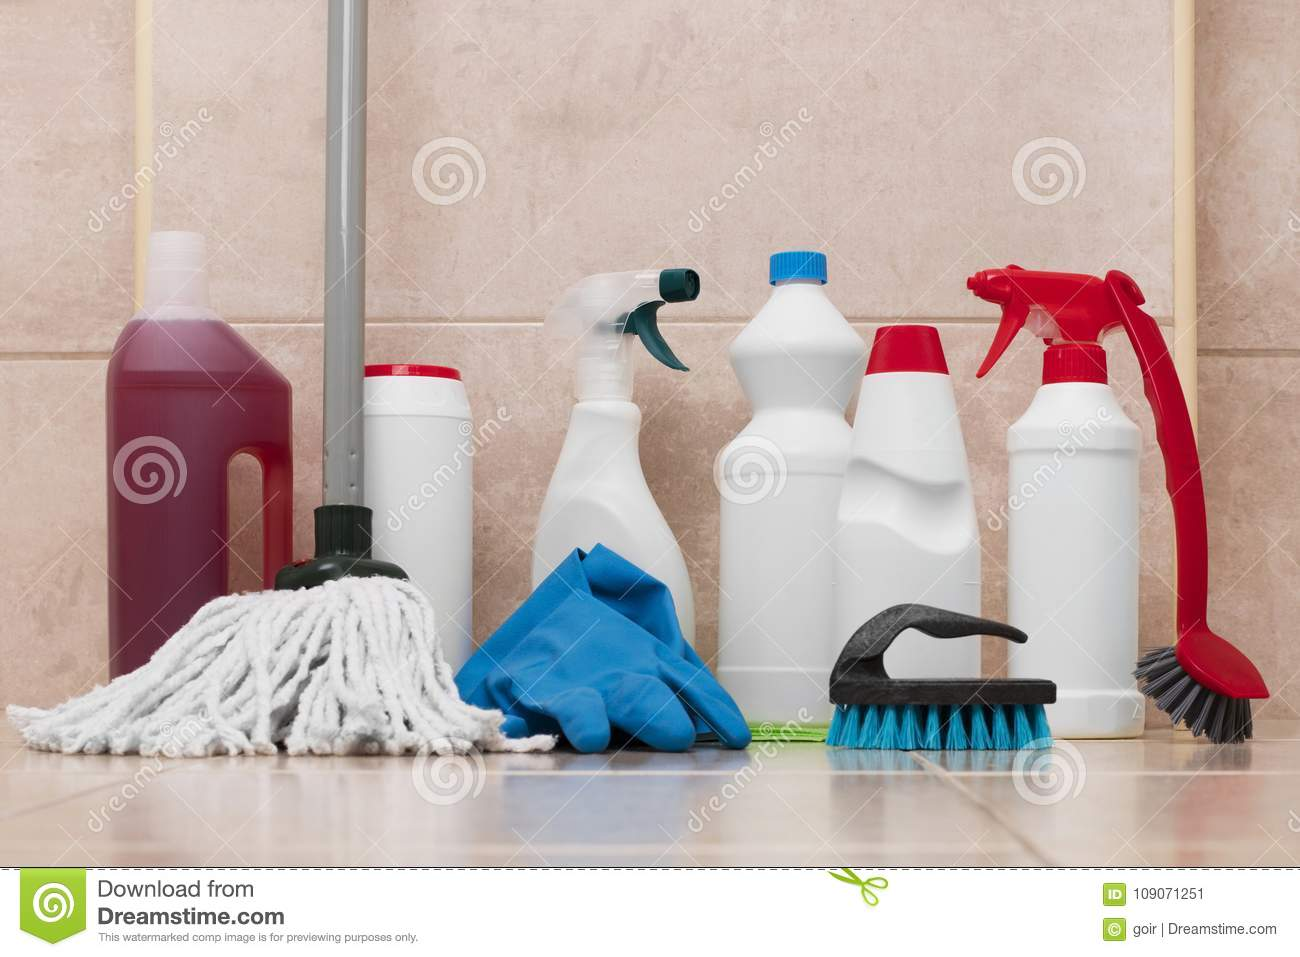 Cleaning Products Stock Image Image Of Housework Glove 109071251